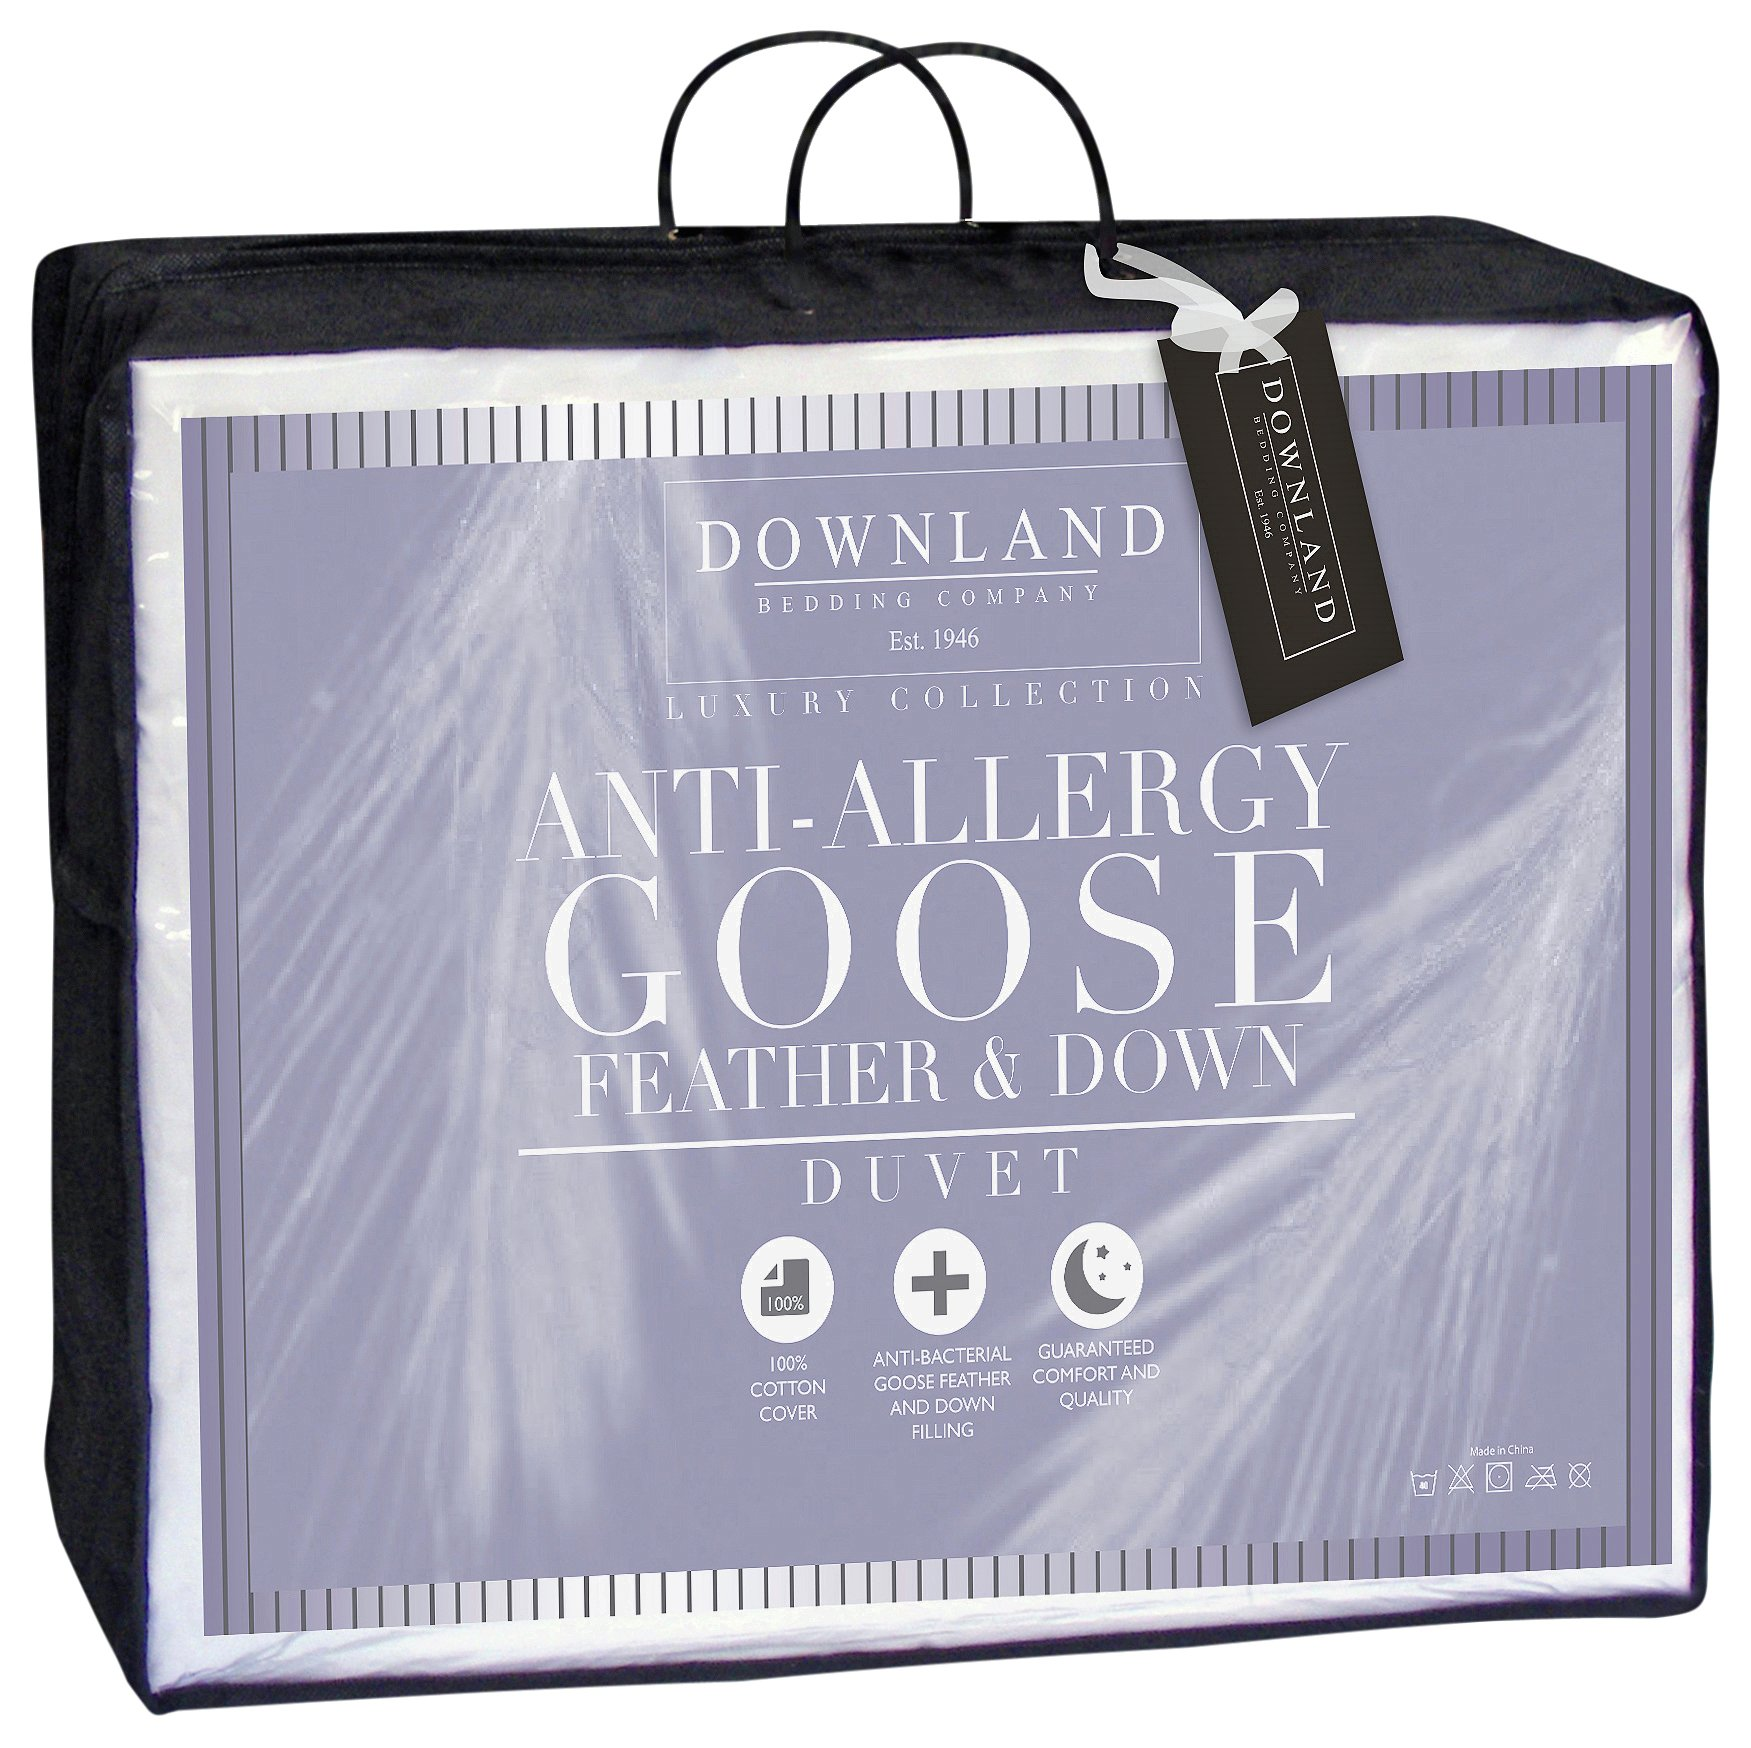 Downland 13.5 Tog Goose Feather and Down Duvet - Single.